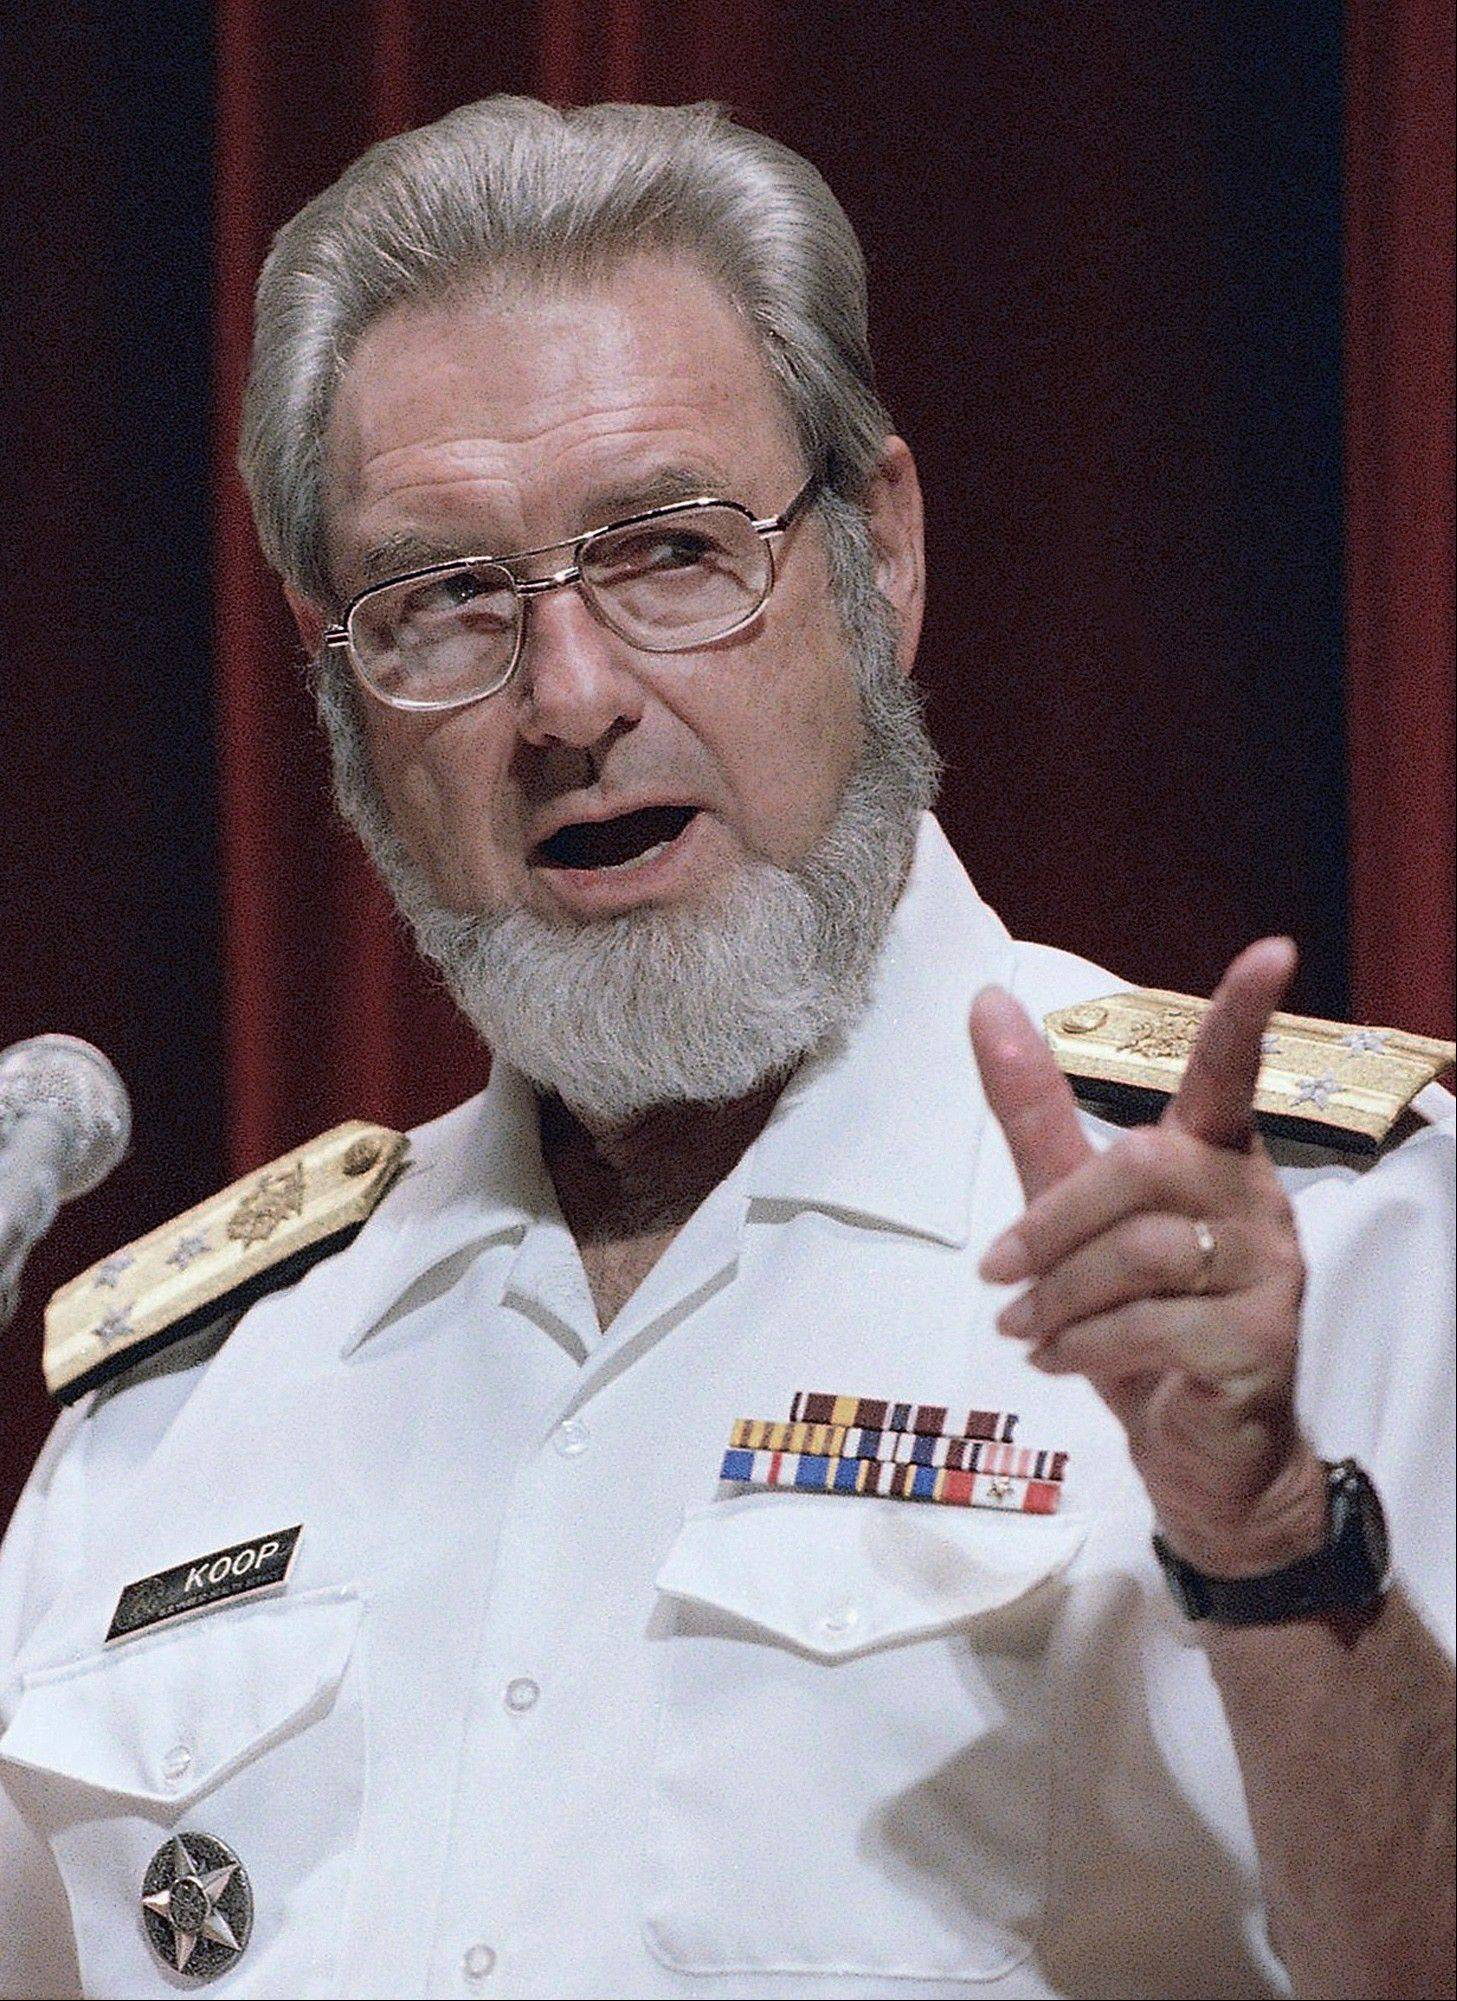 U.S. Surgeon General C. Everett Koop